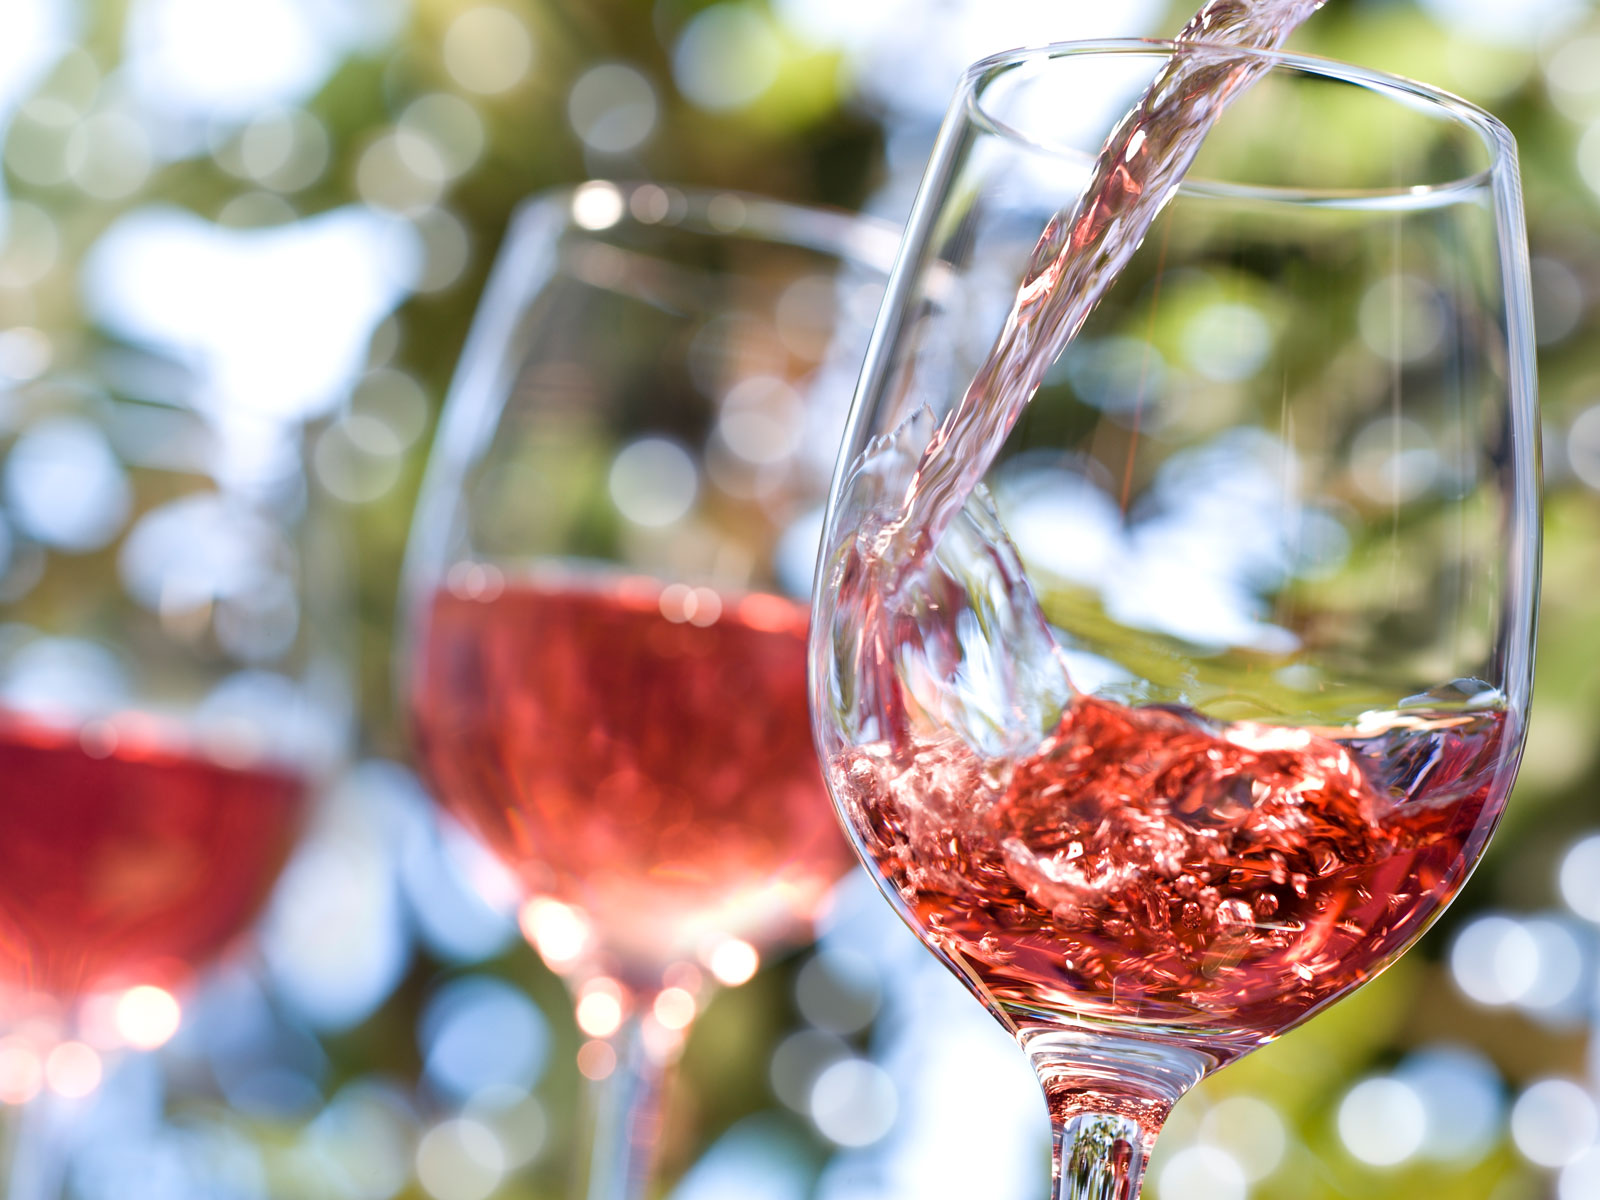 National Wine Day 2019: Where to Get Deals and Discounts for May 25